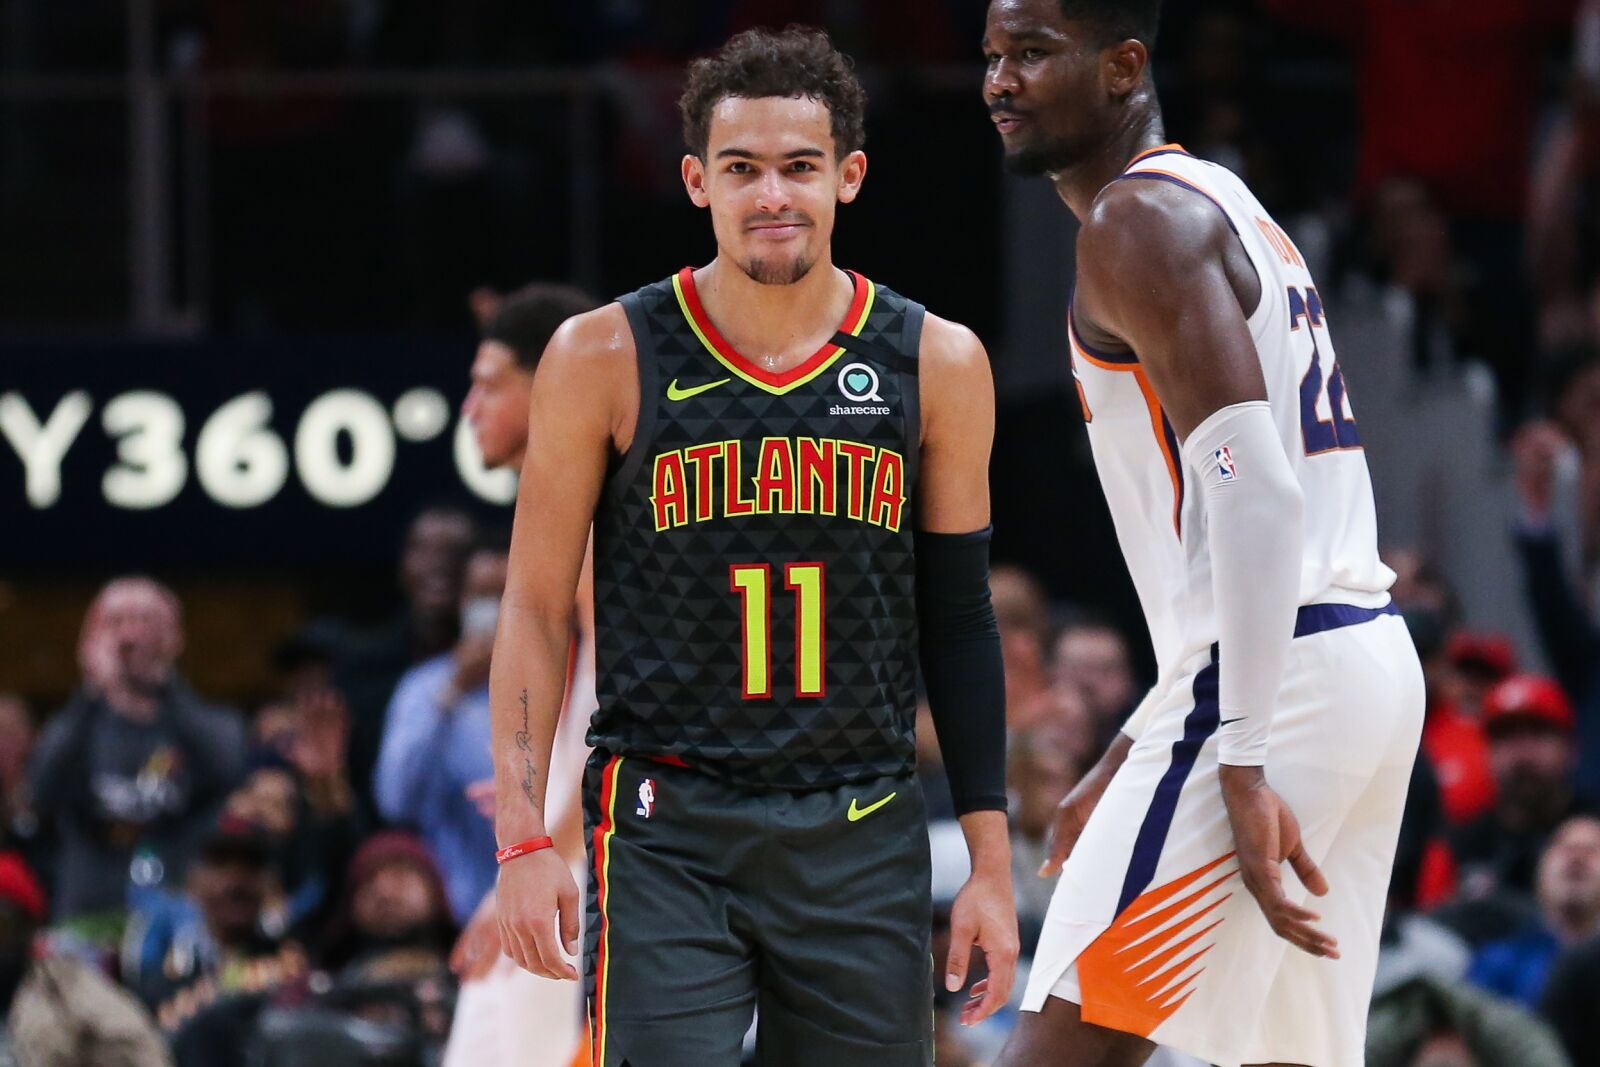 The Phoenix Suns frustratingly lose to the worst team in the NBA